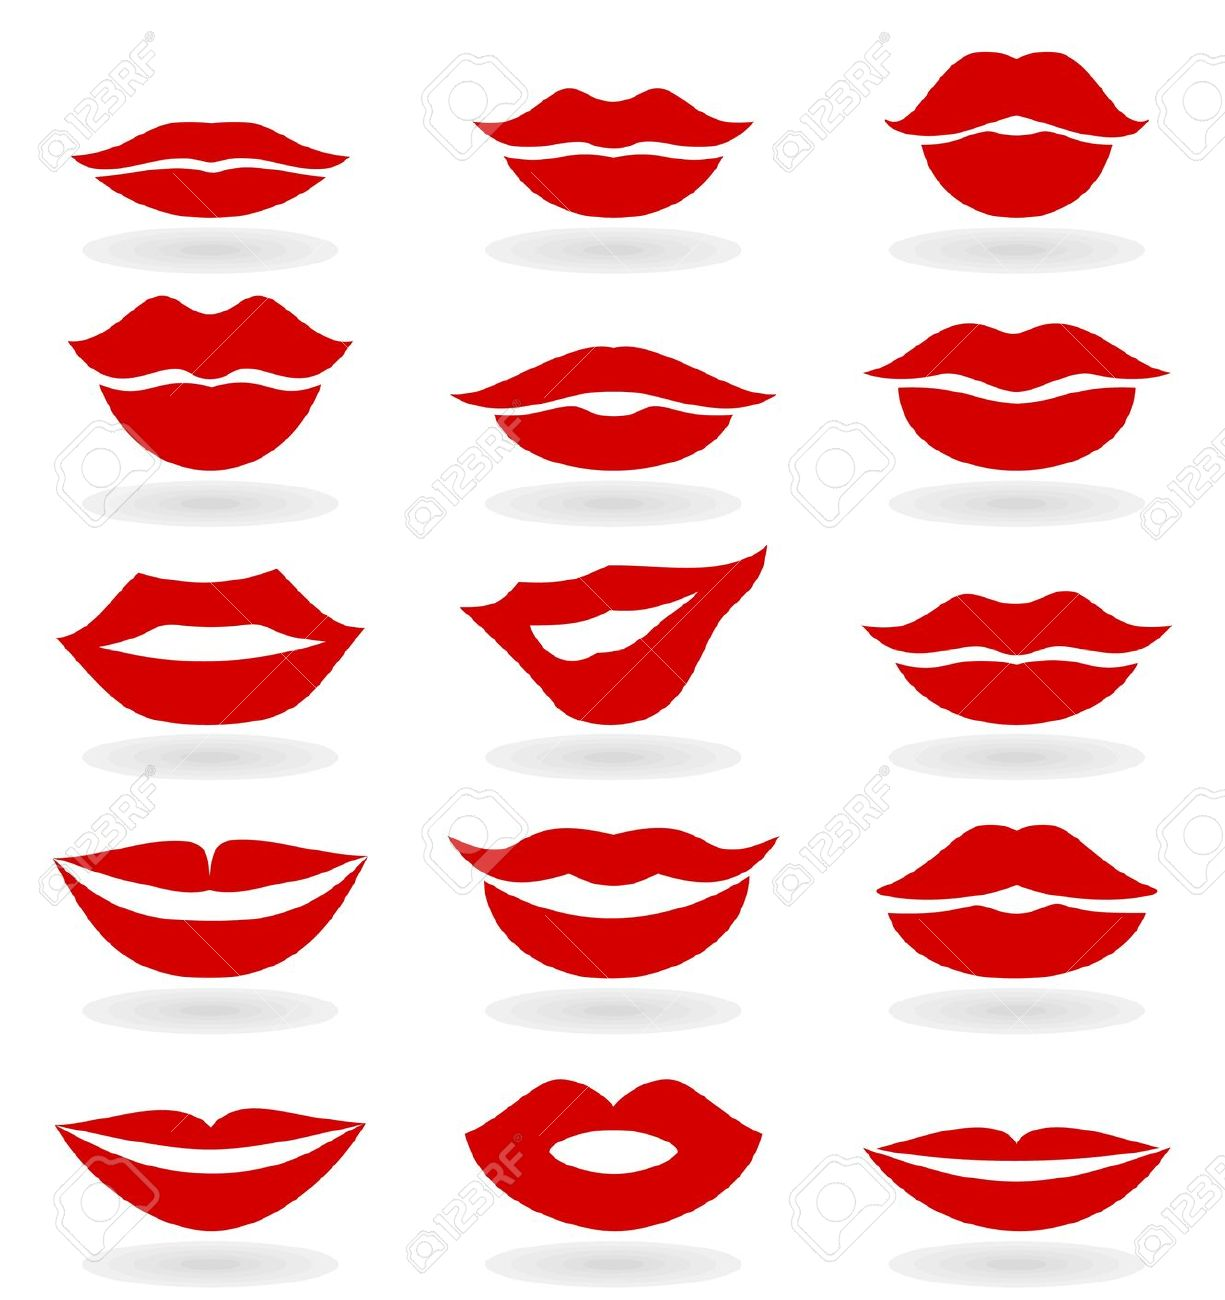 Lips Clipart Free | Free download on ClipArtMag